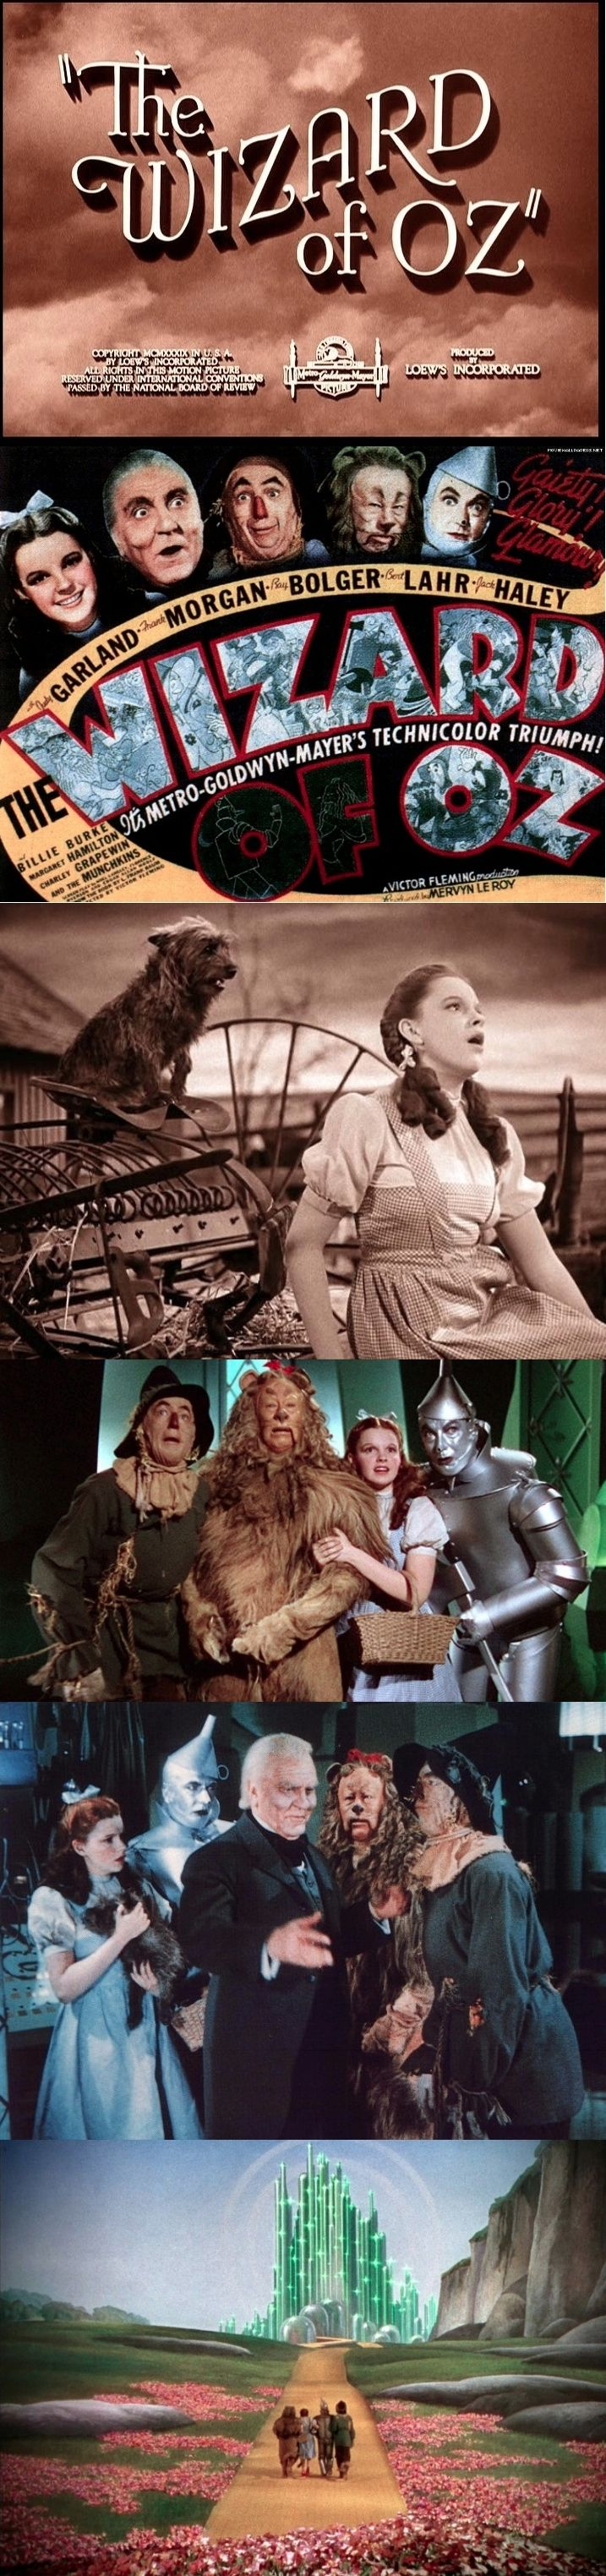 """The Oscars will honor the 75th anniversary of """"The Wizard of Oz,"""" a best picture nominee in 1939. """"The Wizard of Oz"""" received six Oscar nominations, winning two for Original Score and Song. Oscars for outstanding film achievements of 2013 will be presented on Oscar Sunday, March 2, 2014, at the Dolby Theatre® at Hollywood and Highland Center® and televised live on the ABC Television Network."""